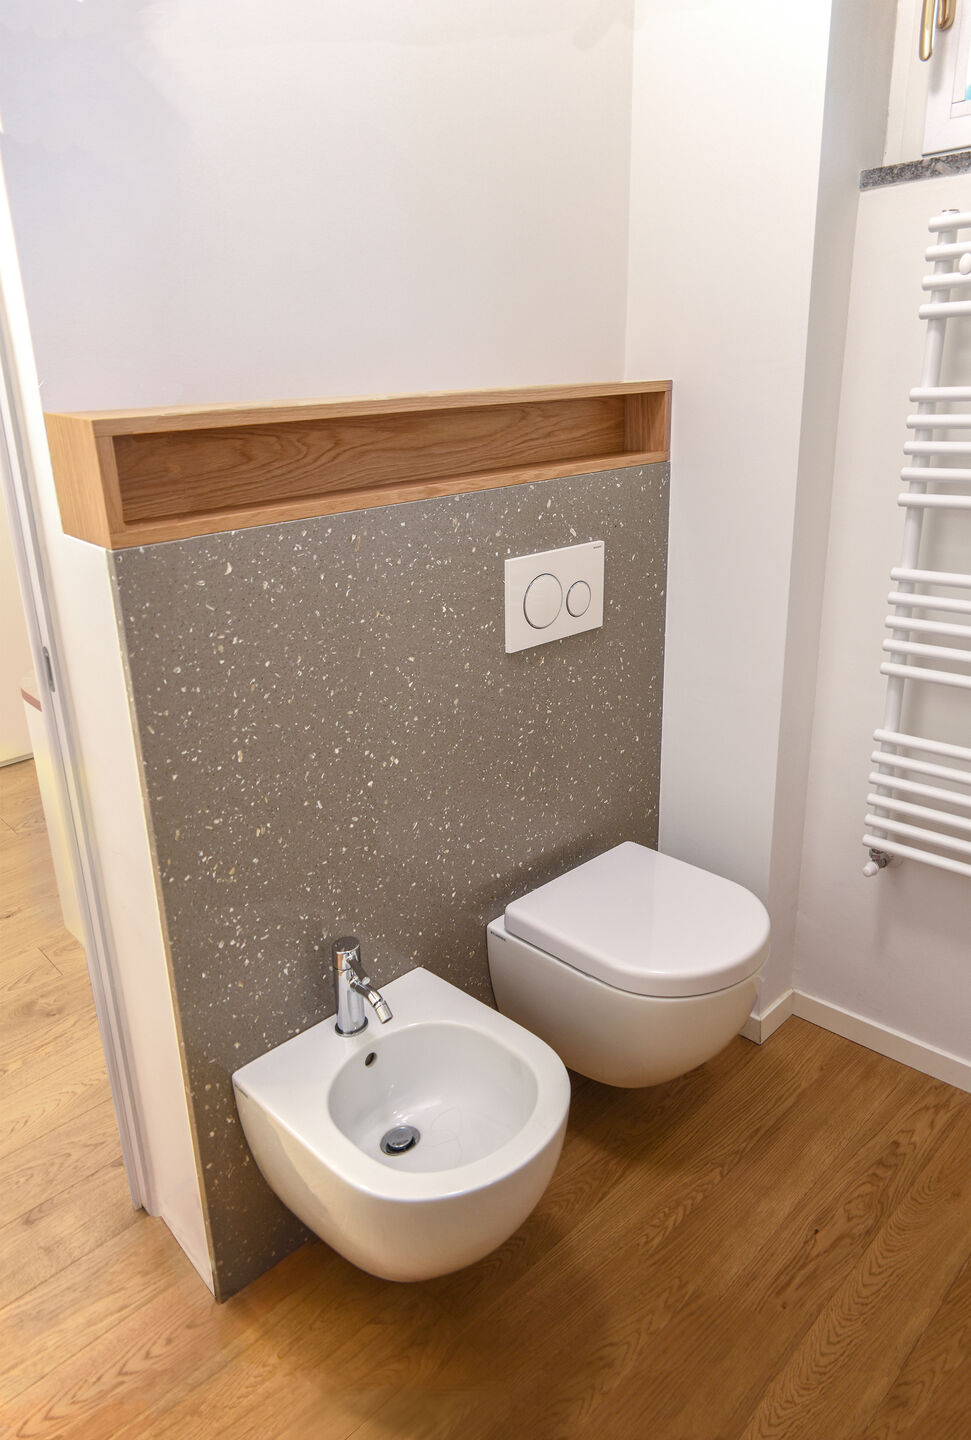 sanitary wall with a small space, only good projects can take advantages from it